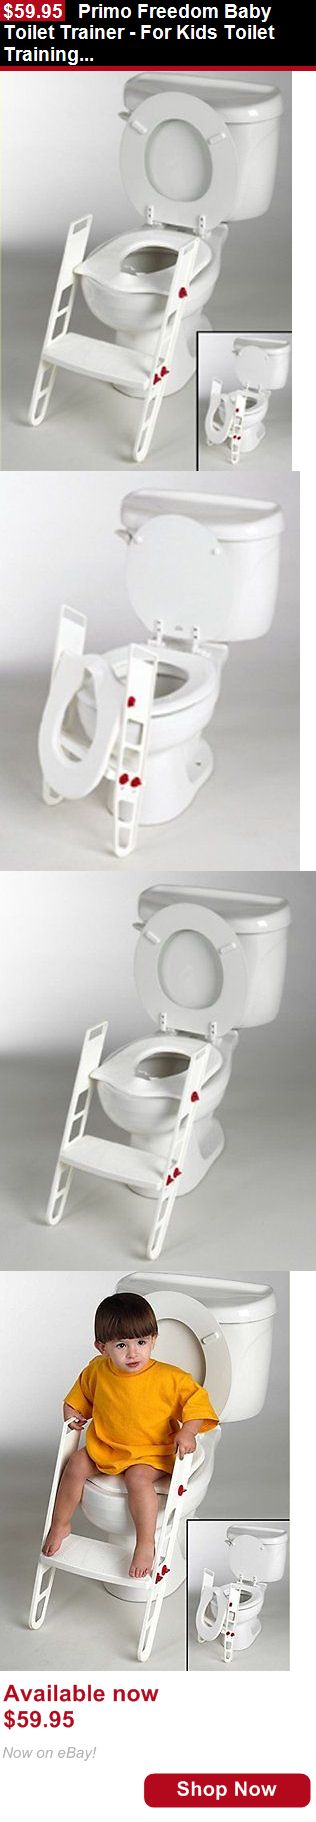 Other Baby: Primo Freedom Baby Toilet Trainer - For Kids Toilet Training Ladder Potty Seat BUY IT NOW ONLY: $59.95